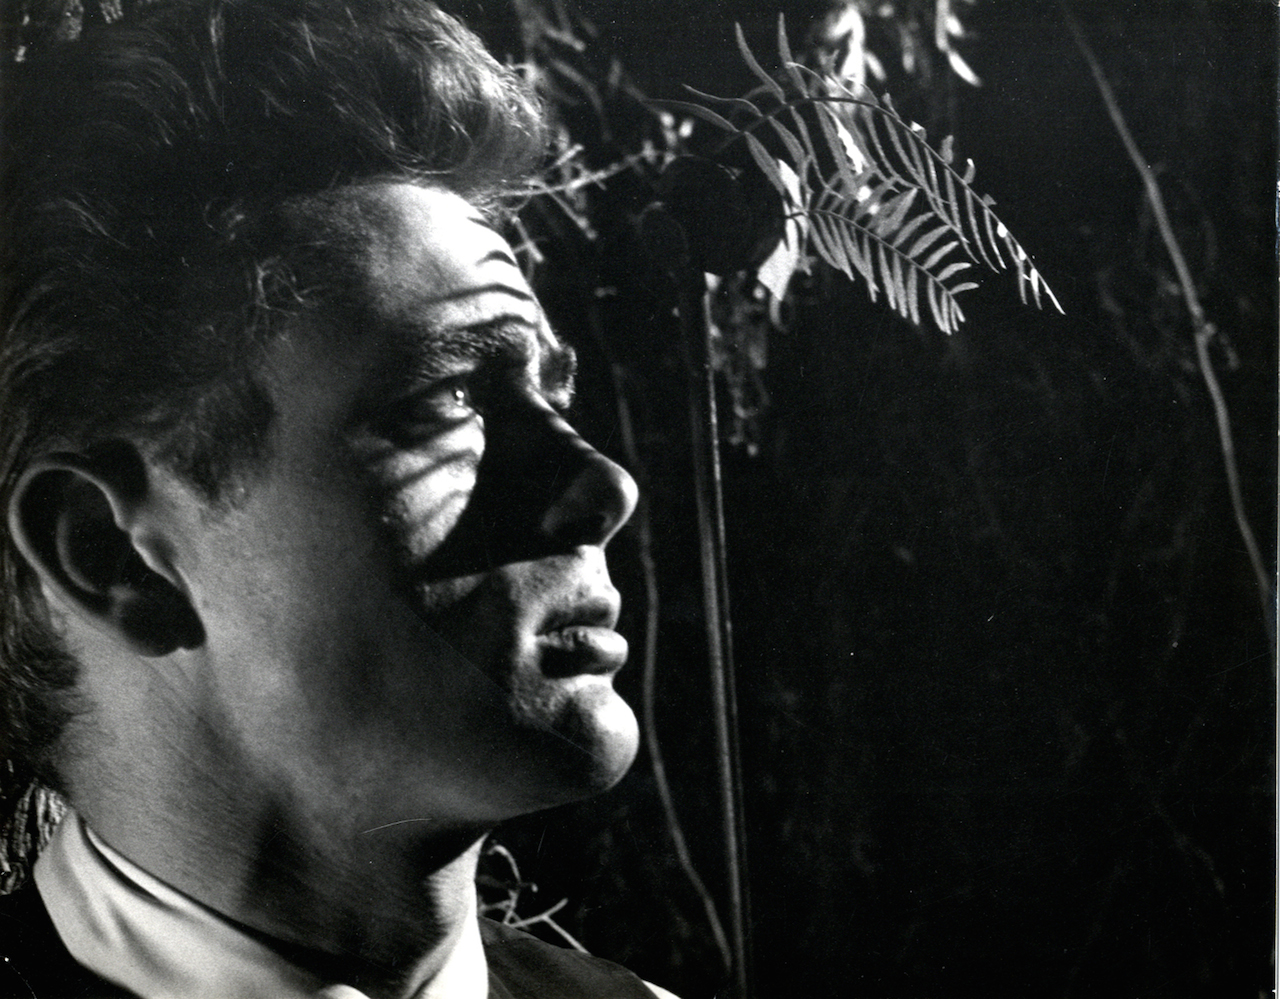 James Dean. Still from director Elia Kazan's East of Eden. The Museum of Modern Art Film Stills Collection. All images courtesy of the Museum of Modern Art.